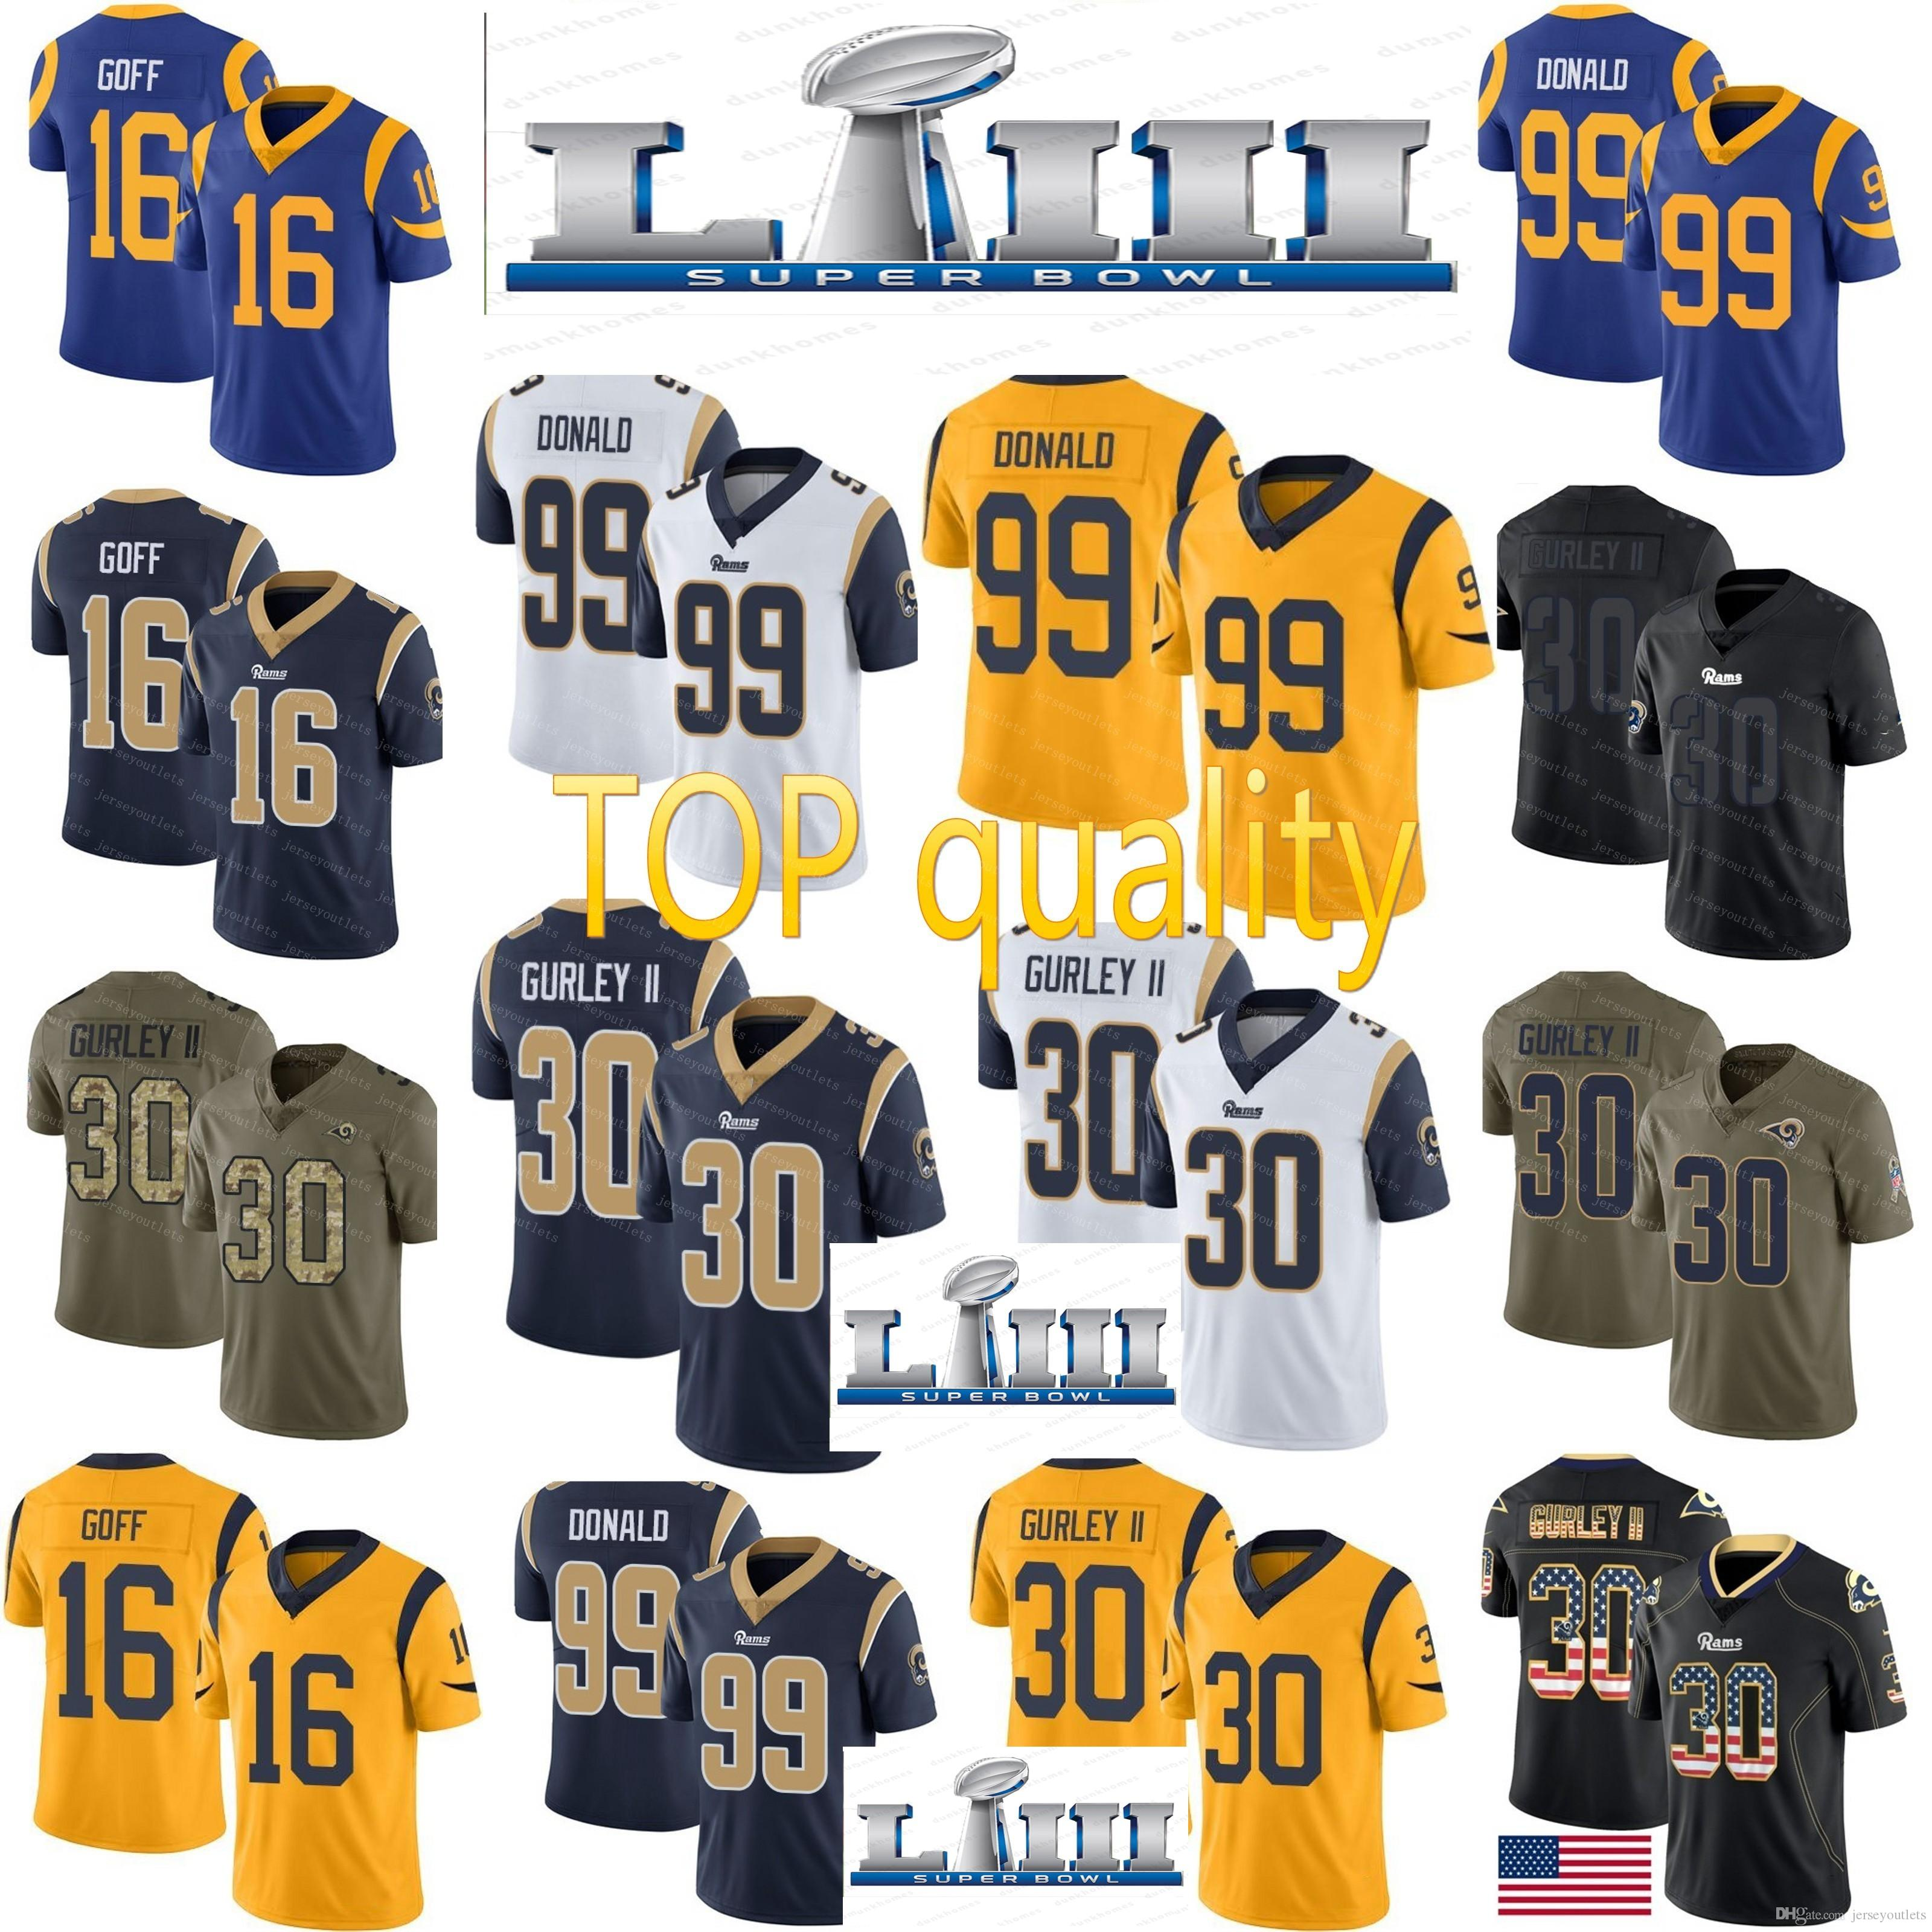 66c86144c 2019 2019 Super Bowl Rams 30 Todd Gurley 16 Jared Goff Jersey 5 Nick Foles  Rams 99 Aaron Donald Jerseys Cheap Sale From Jerseyoutlets